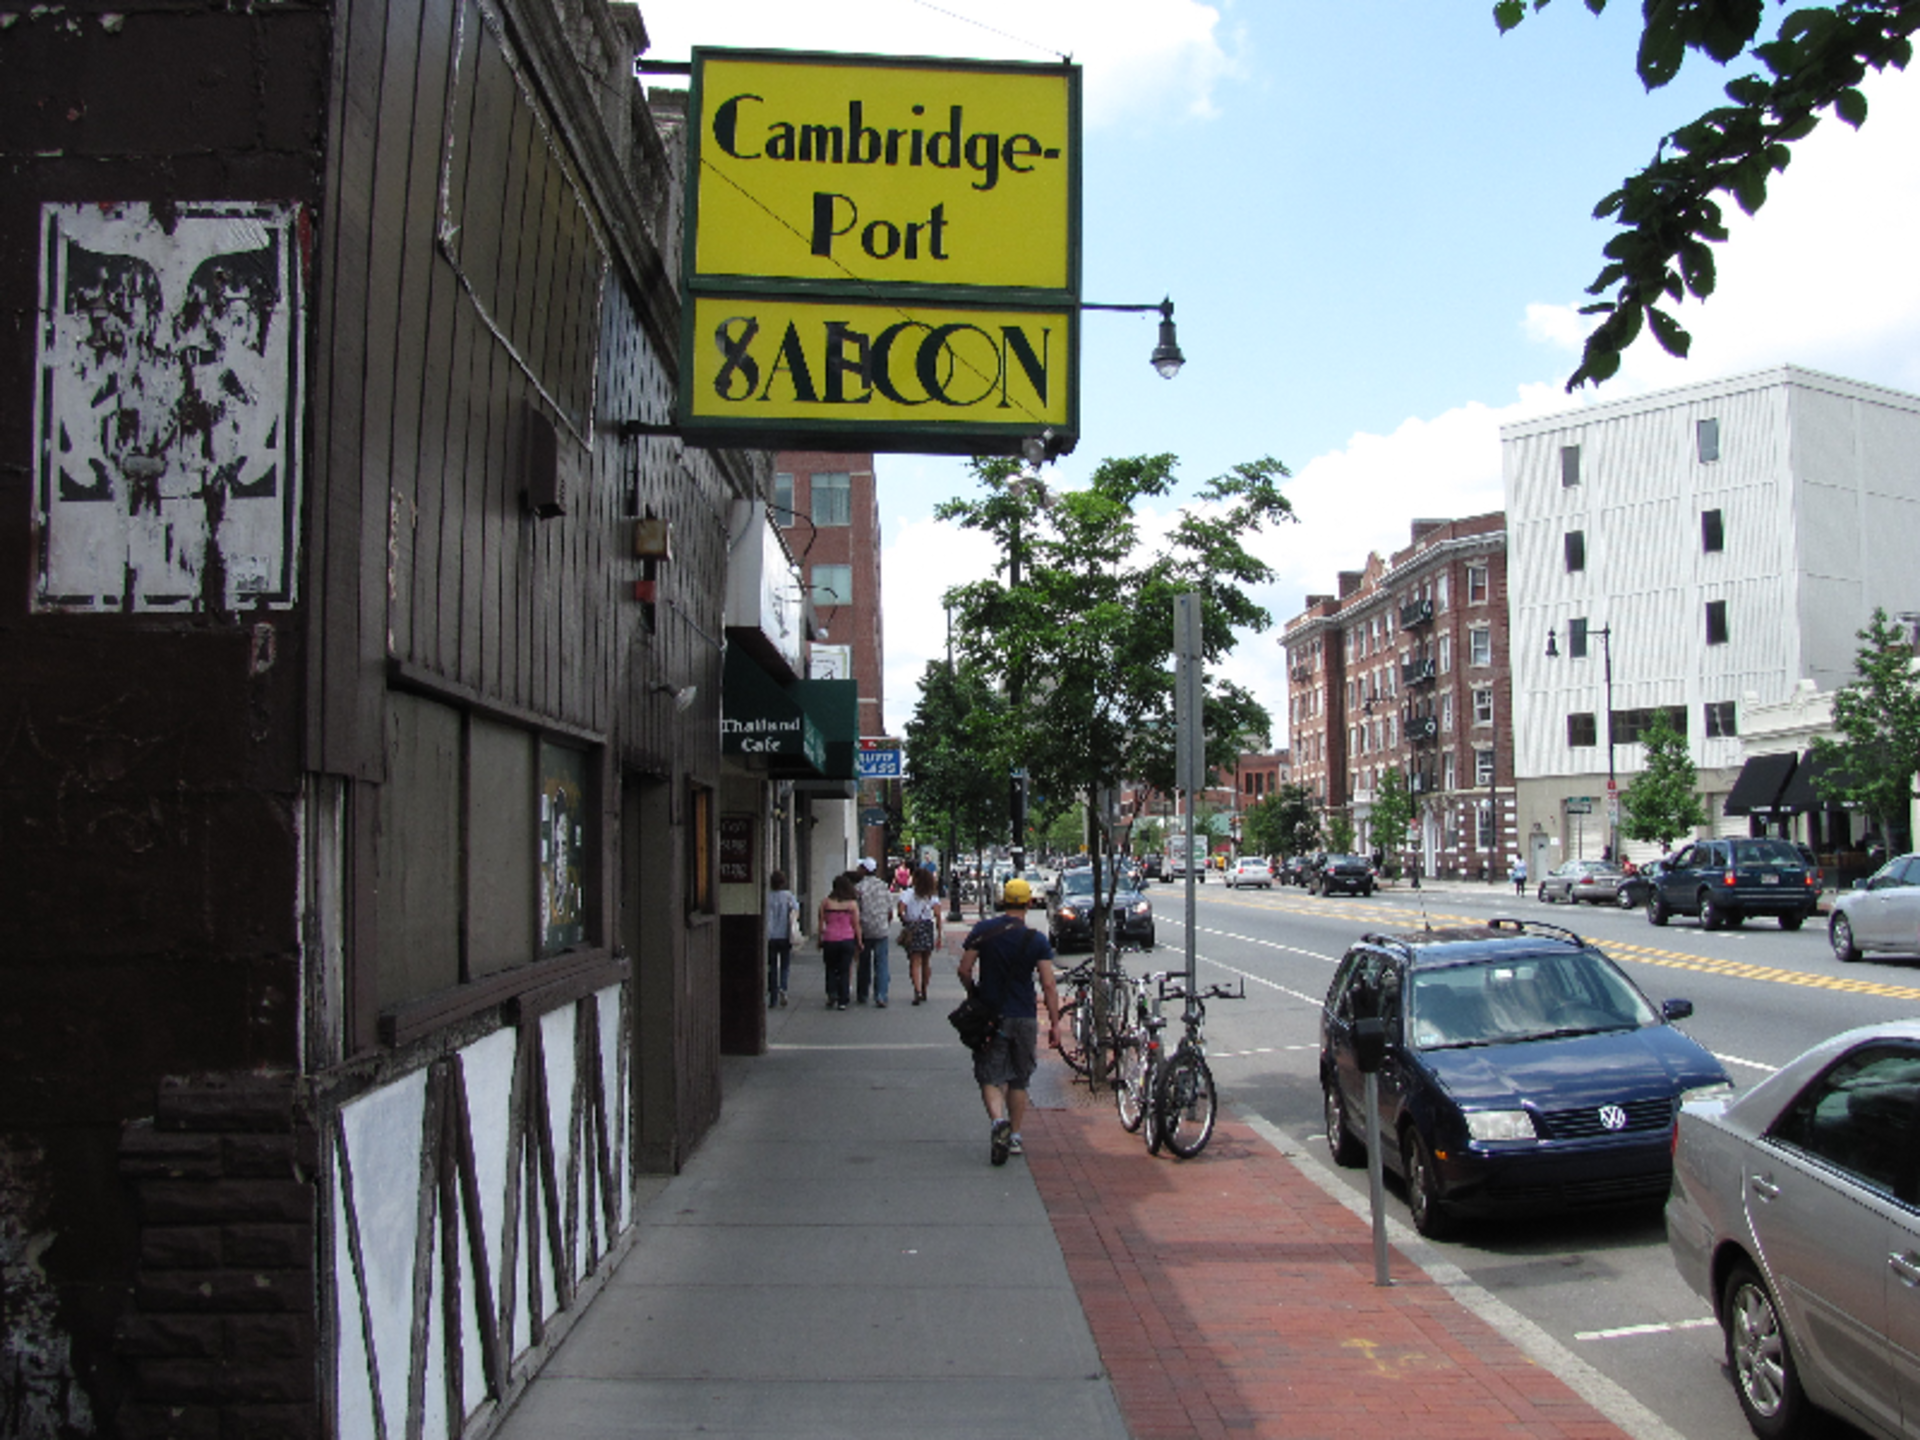 Cambridgeport